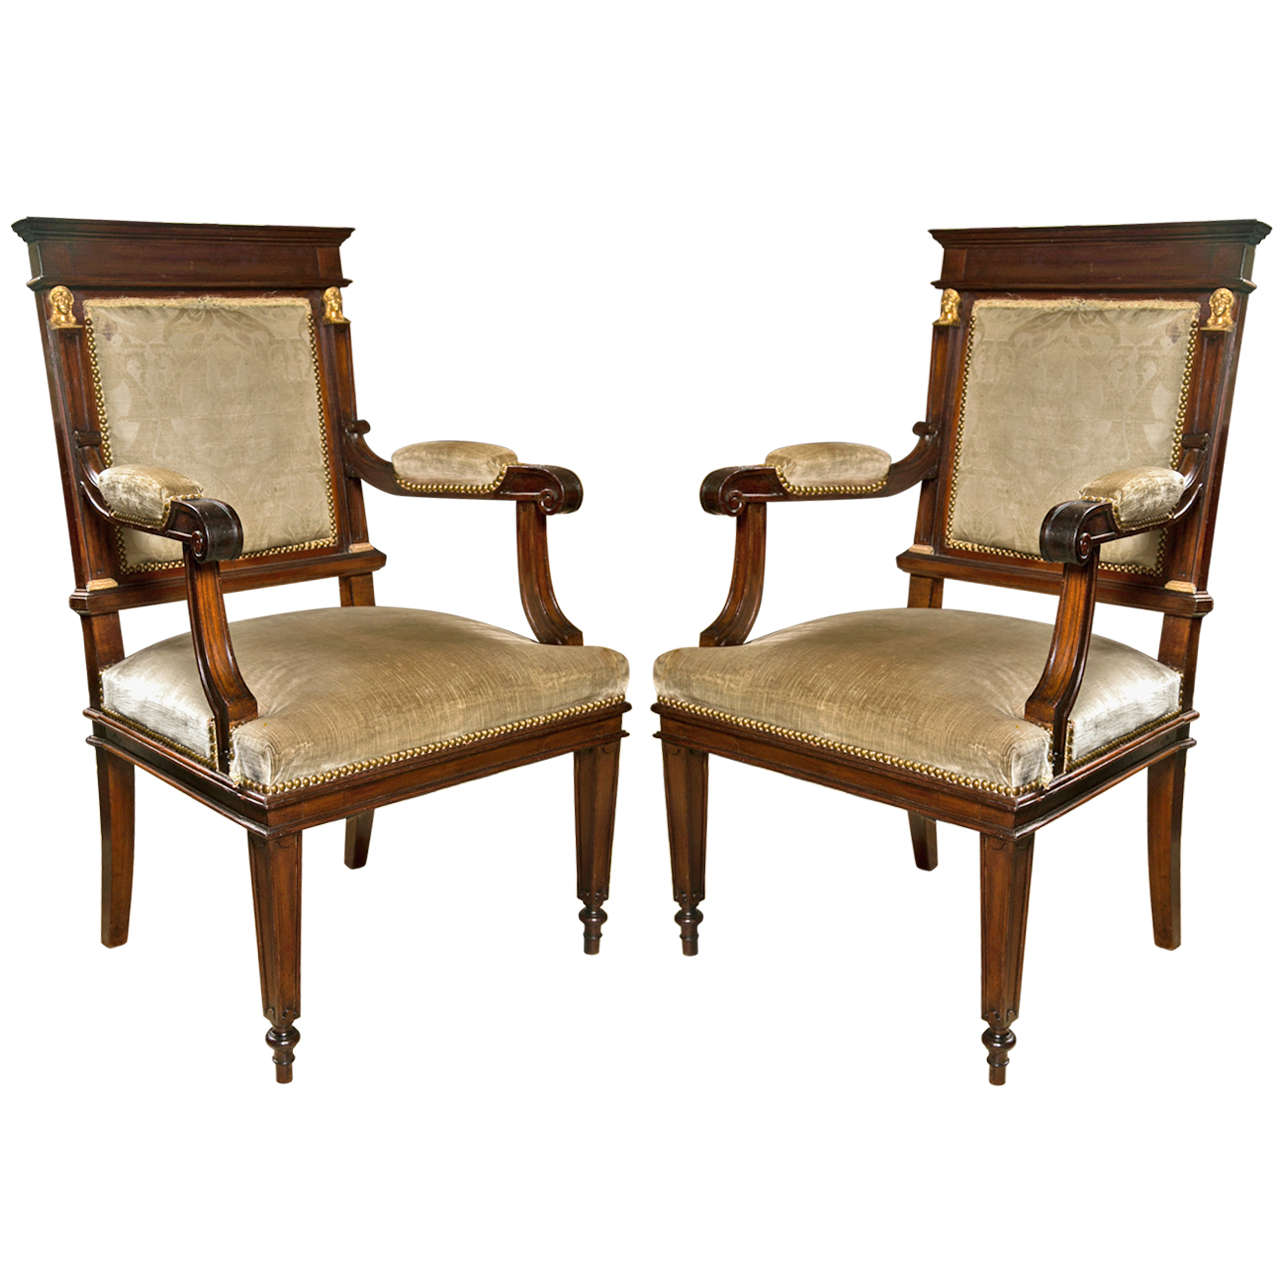 Etonnant Pair Mahogany Empire Style Open Arm Chairs For Sale